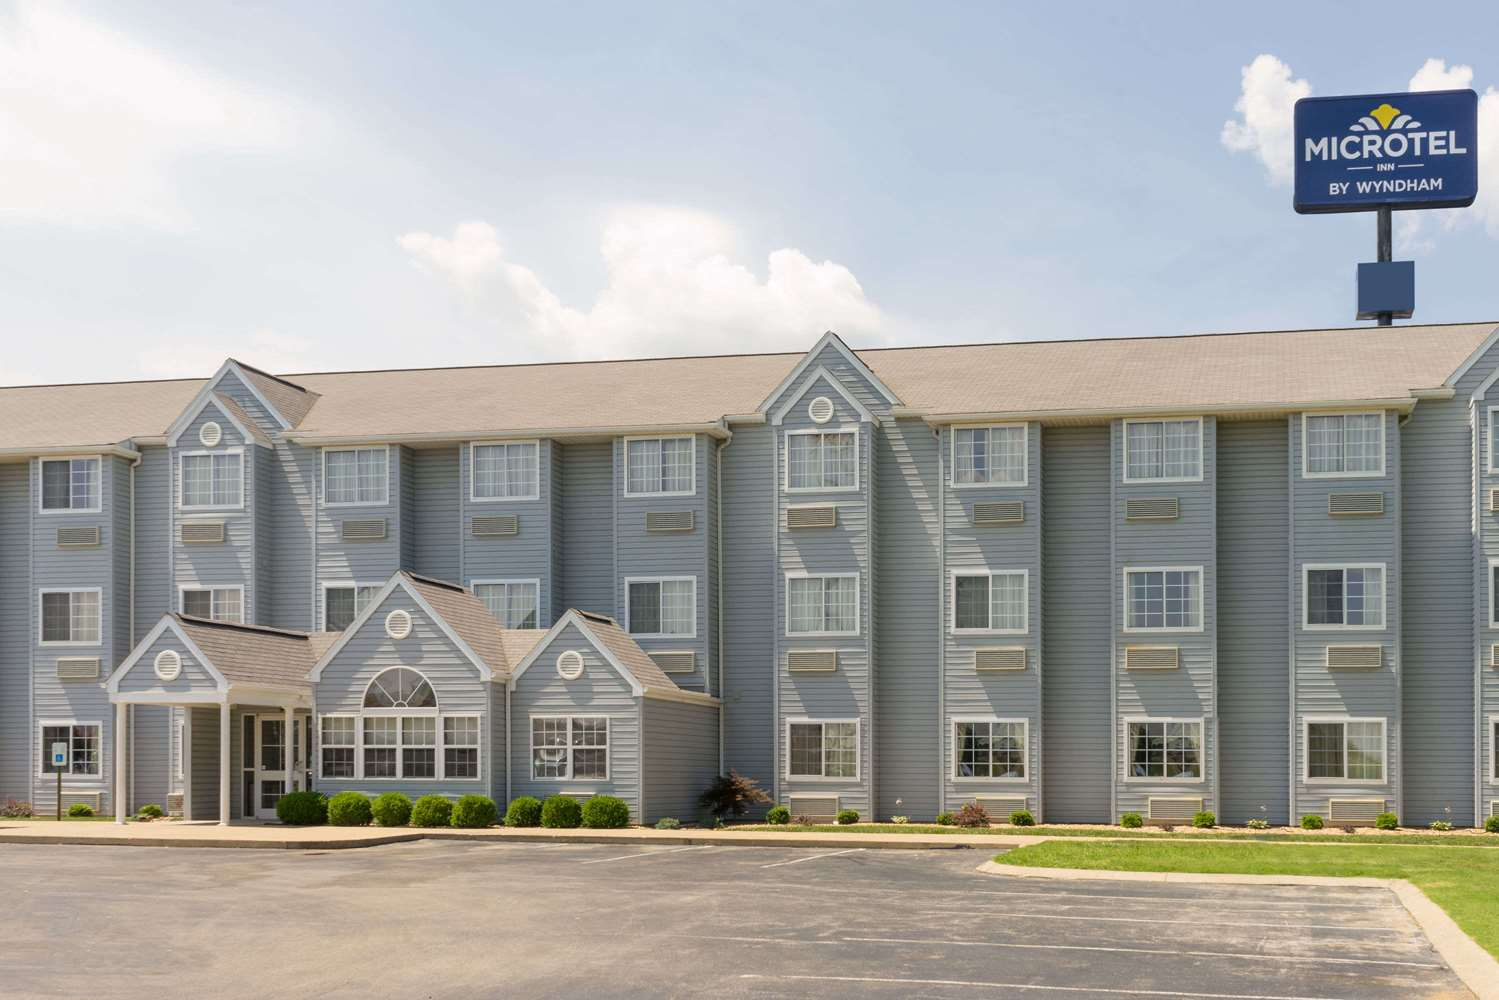 Exterior view - Microtel Inn by Wyndham Bowling Green